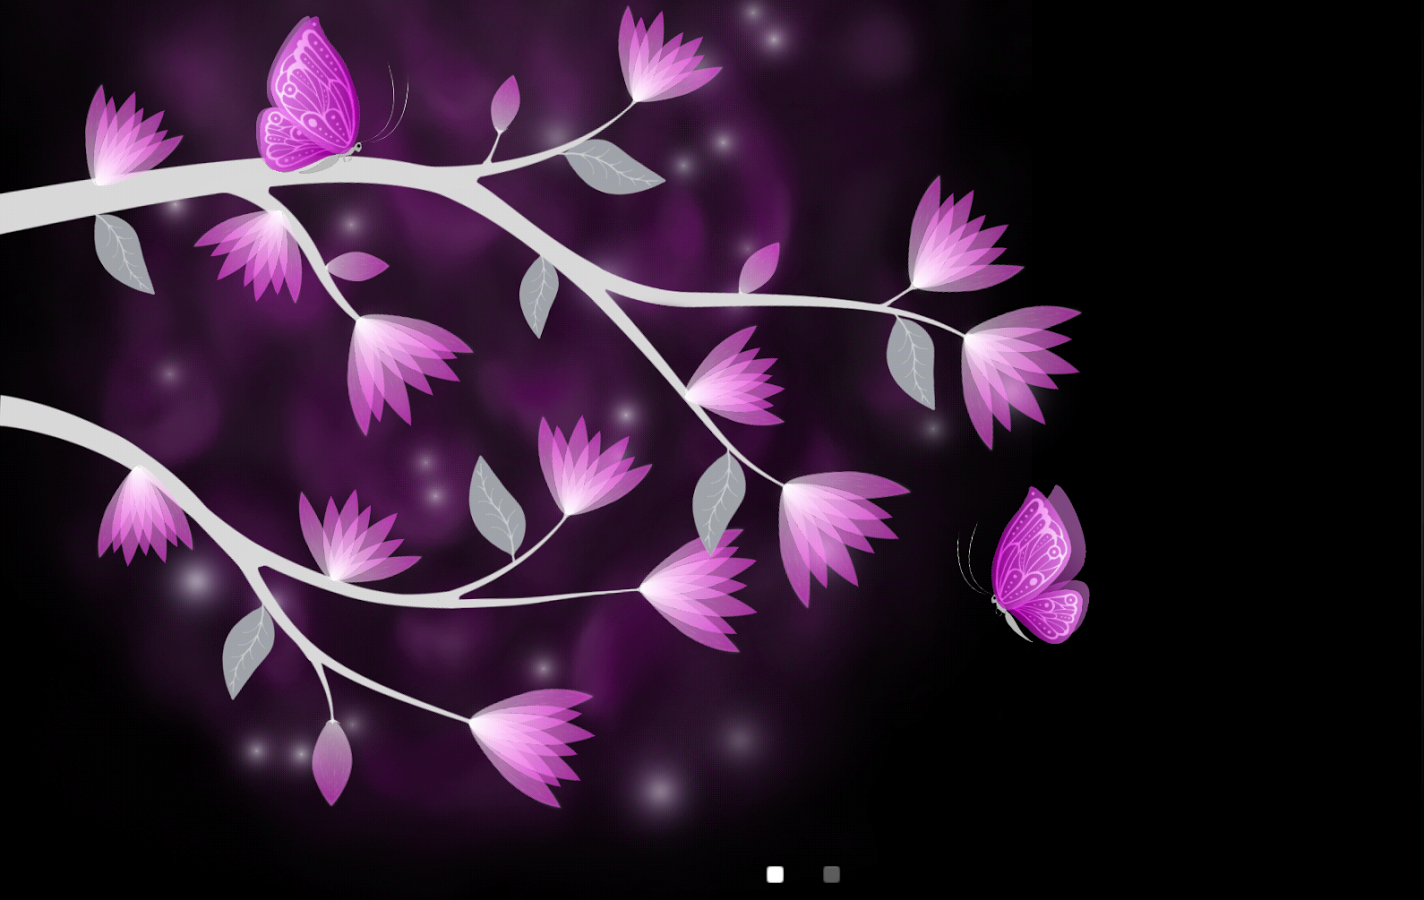 Night Flowers v1.3